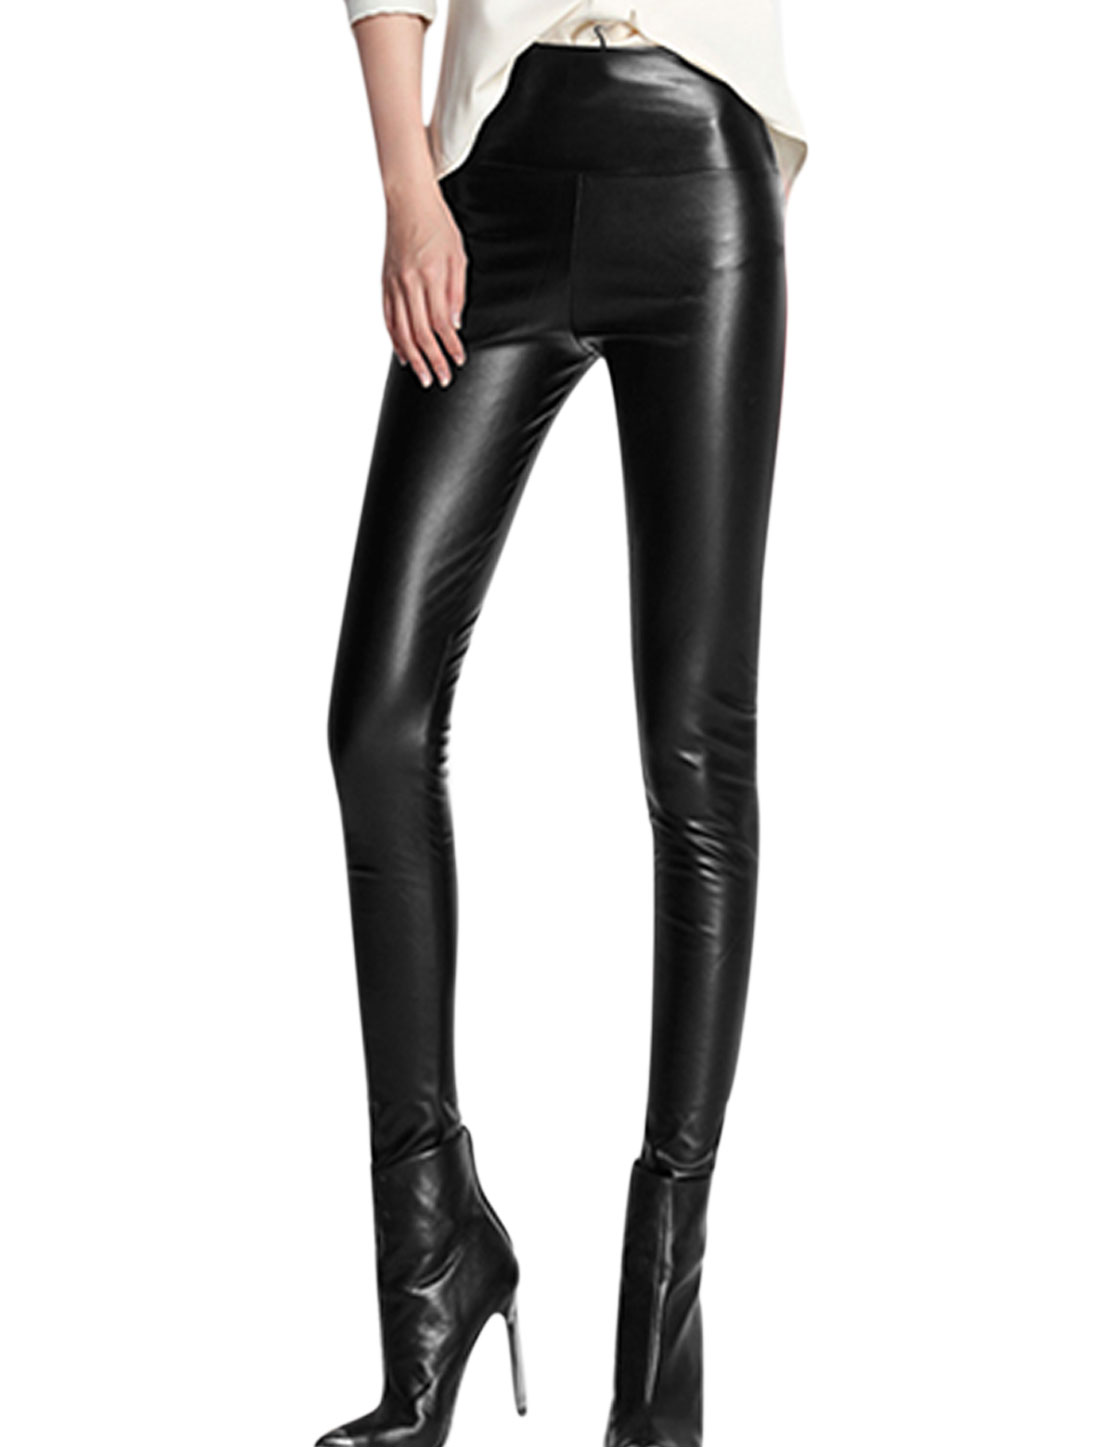 Women High Wasit Wide Waistband Skinny Chic Imitation Leather Leggings Black XS